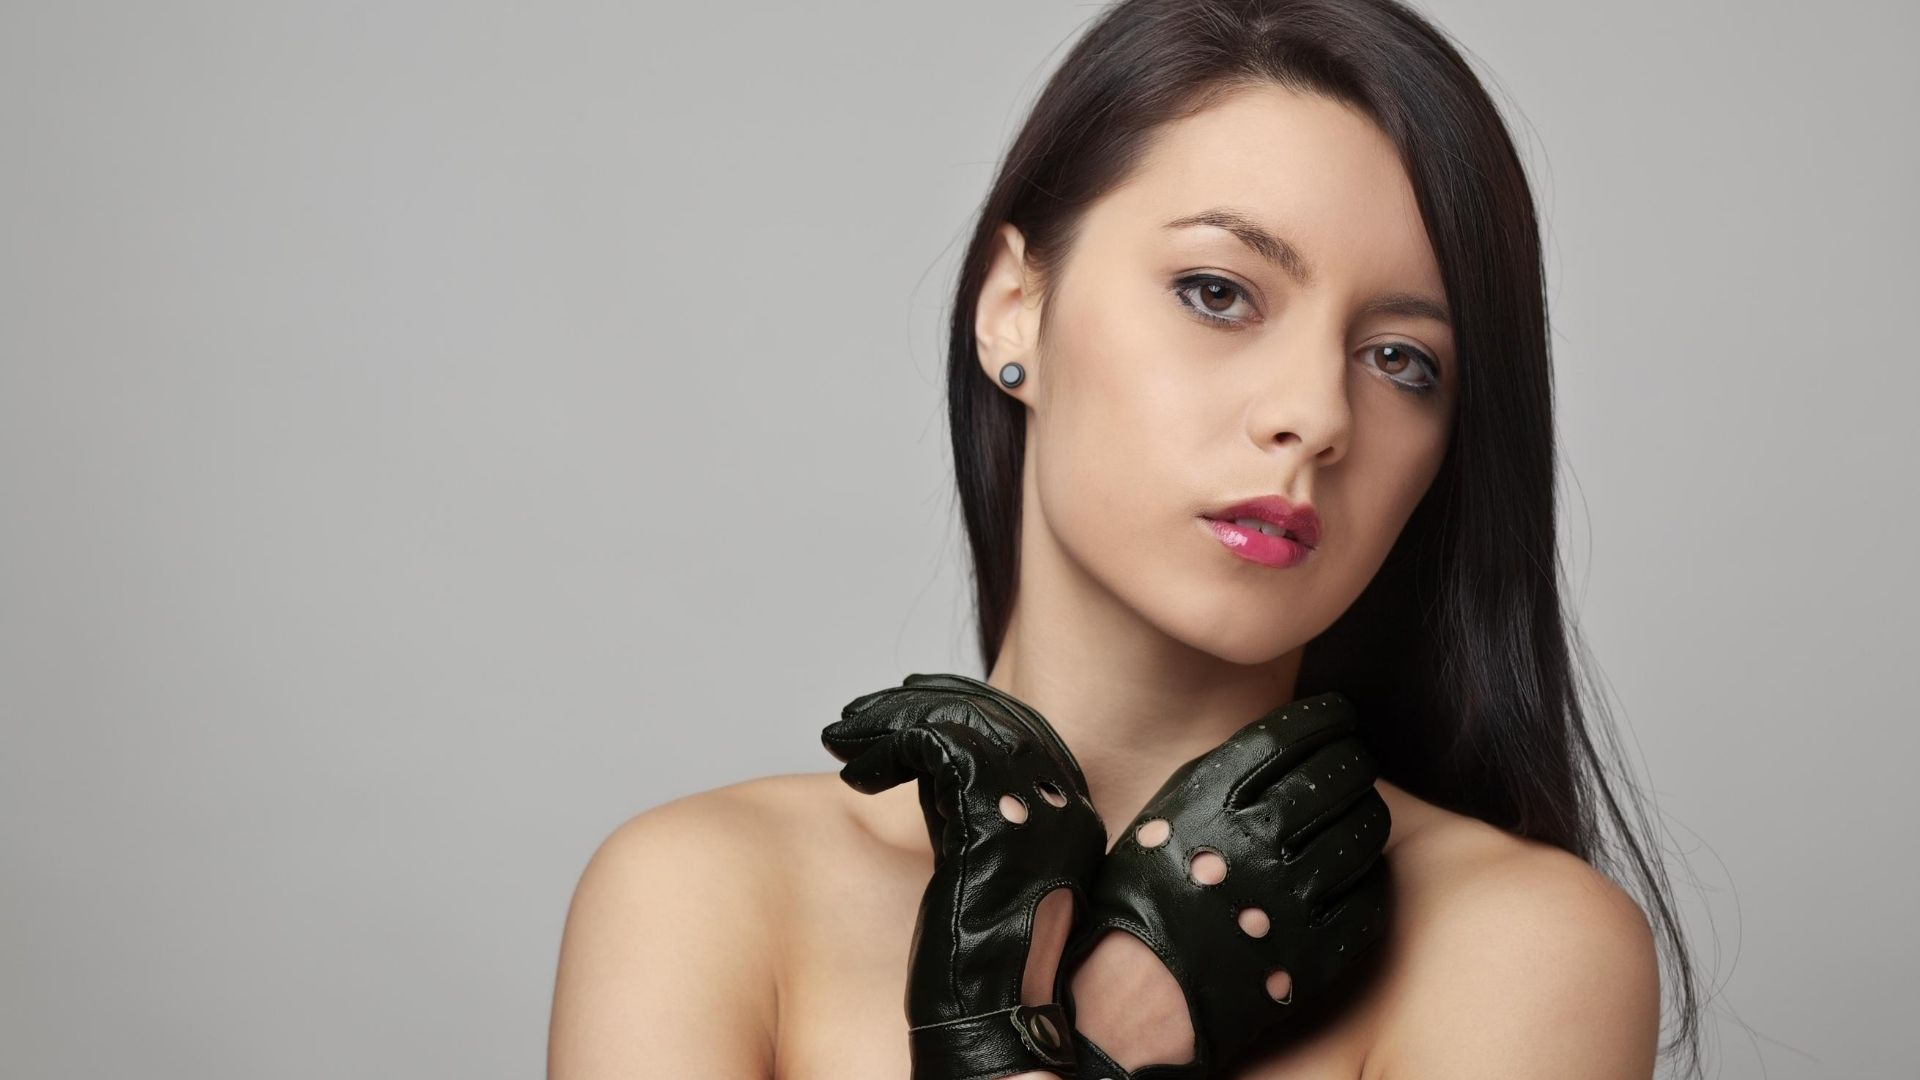 Woman wearing a pair of black driving gloves.